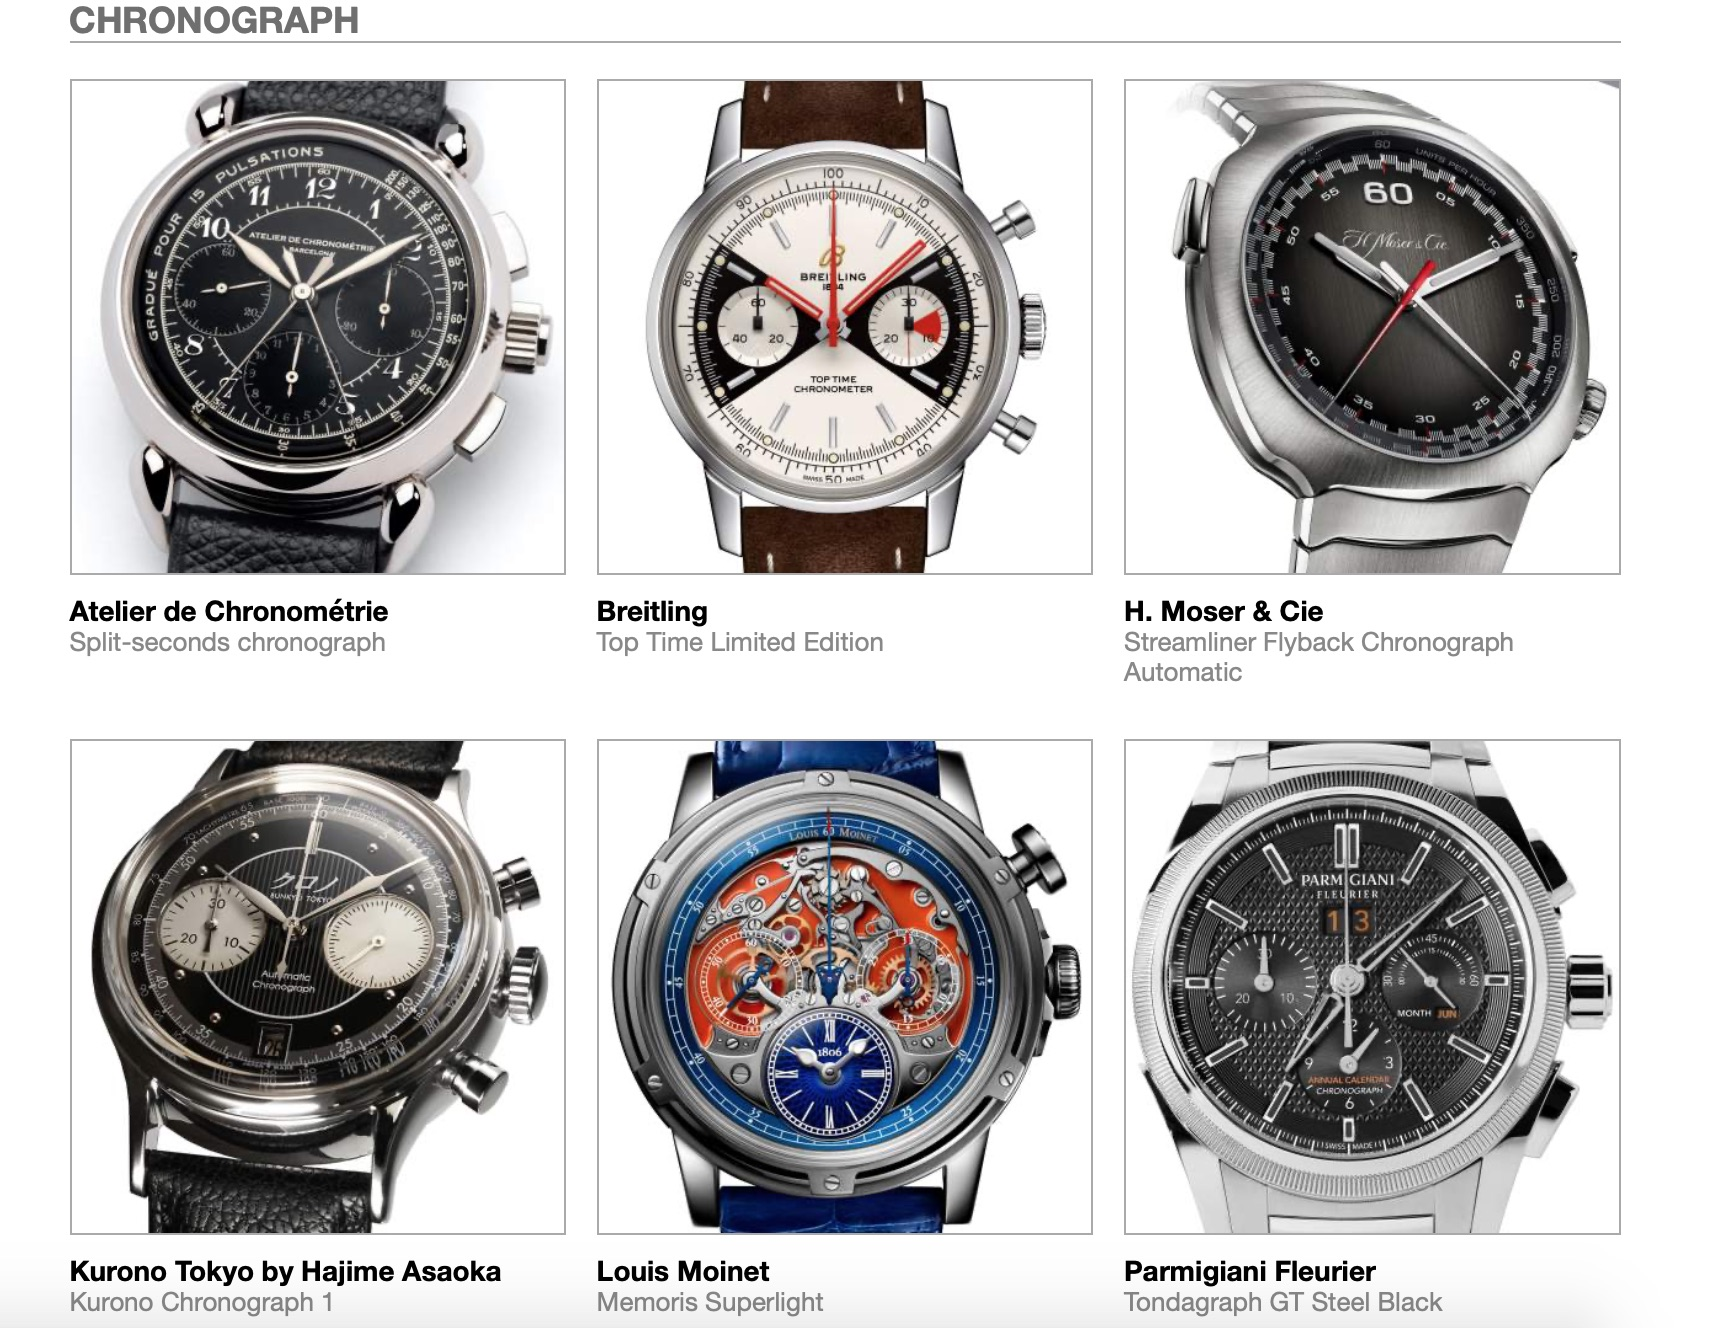 Grand Prix d'Horlogerie de Genève GPHG Academy Nominated Watches 2020 Chronograph